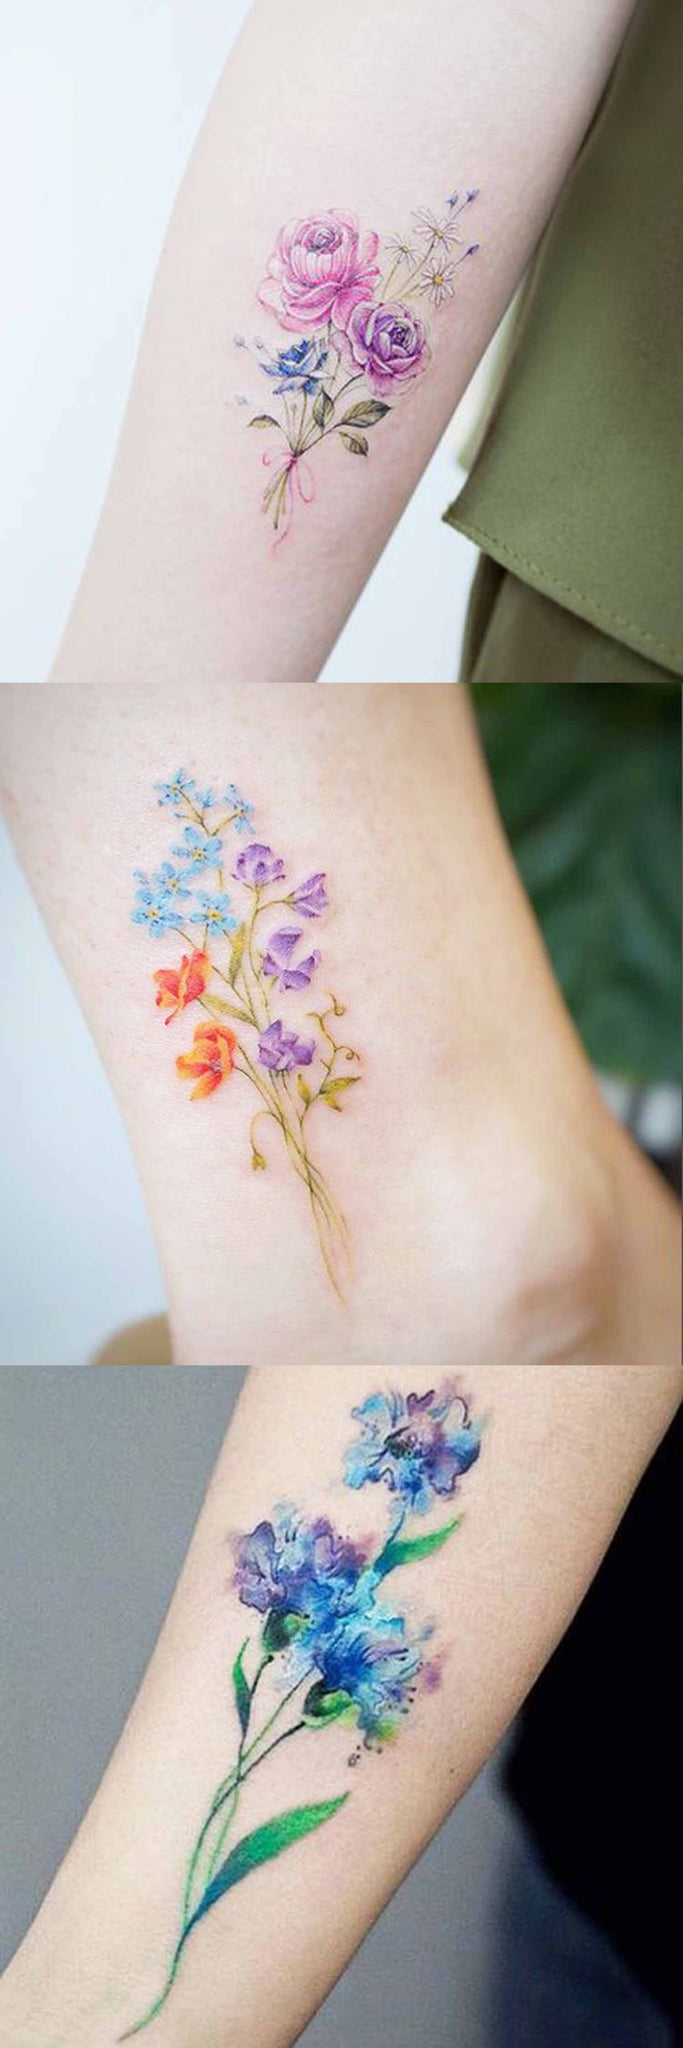 Small Flower Tattoos: 30 Delicate Flower Tattoo Ideas